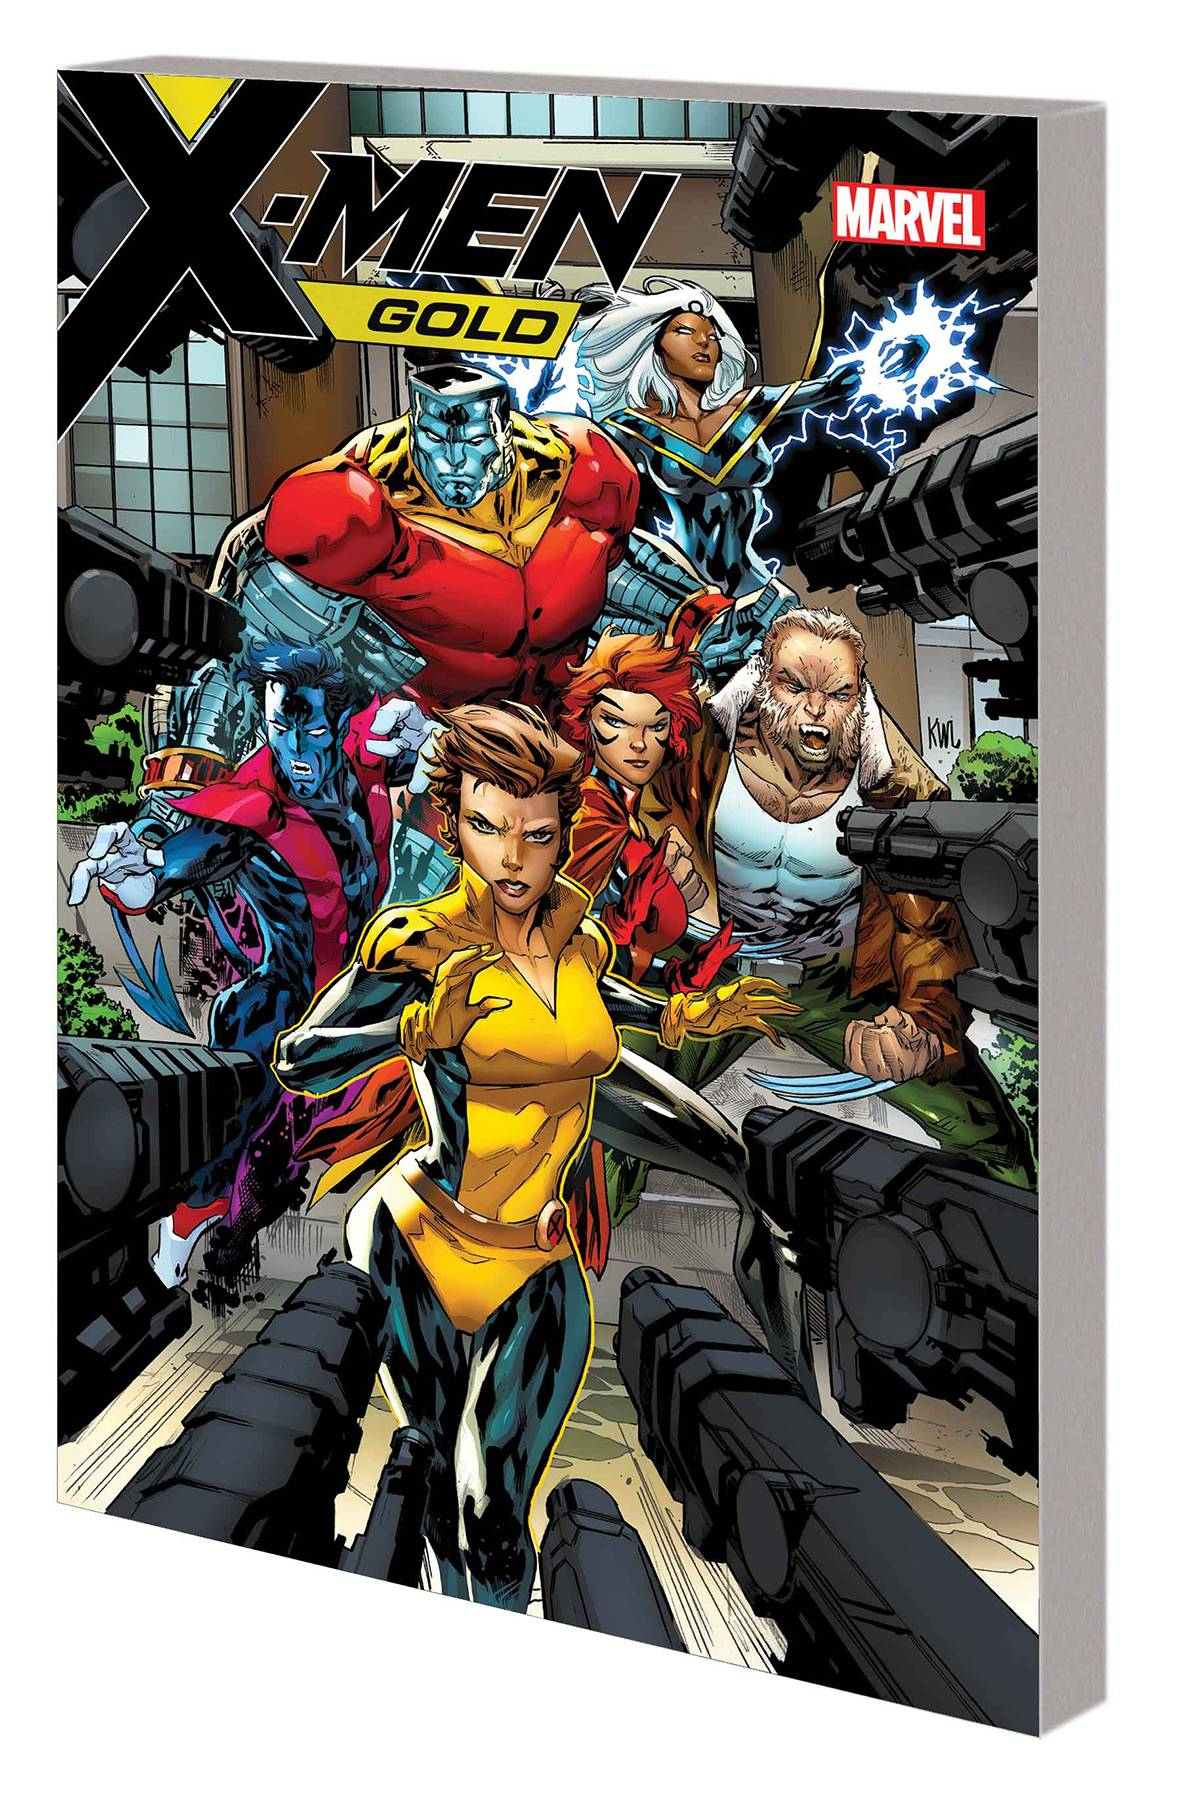 Will Hydra's Secret Empire tarnish the Gold team? When Manhattan is  besieged, the X-Men open their doors as a safe haven for any human or  mutant. But little ...